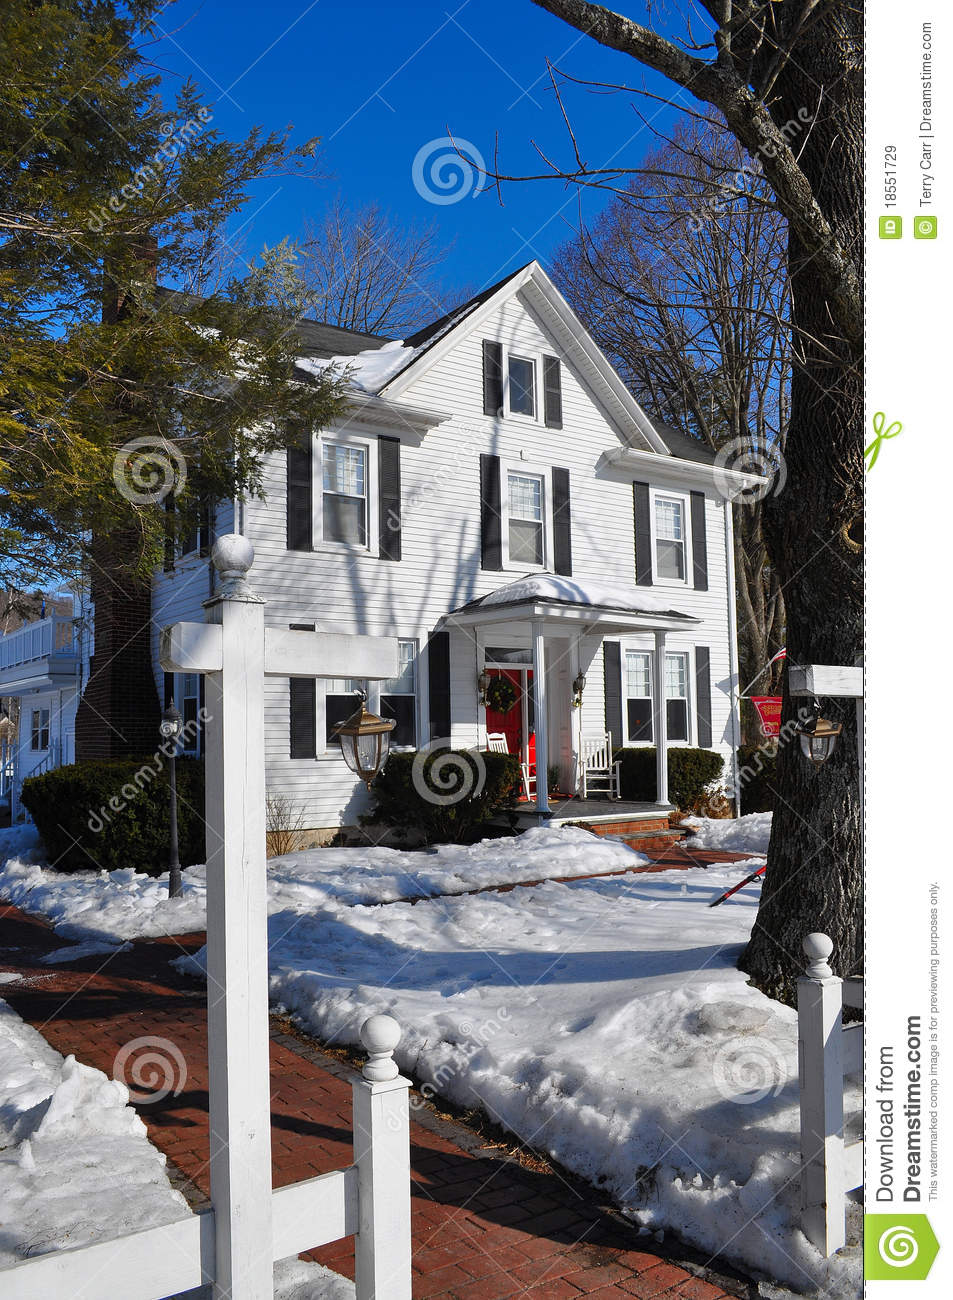 Detached guest house in winter royalty free stock images for House plans with detached guest house